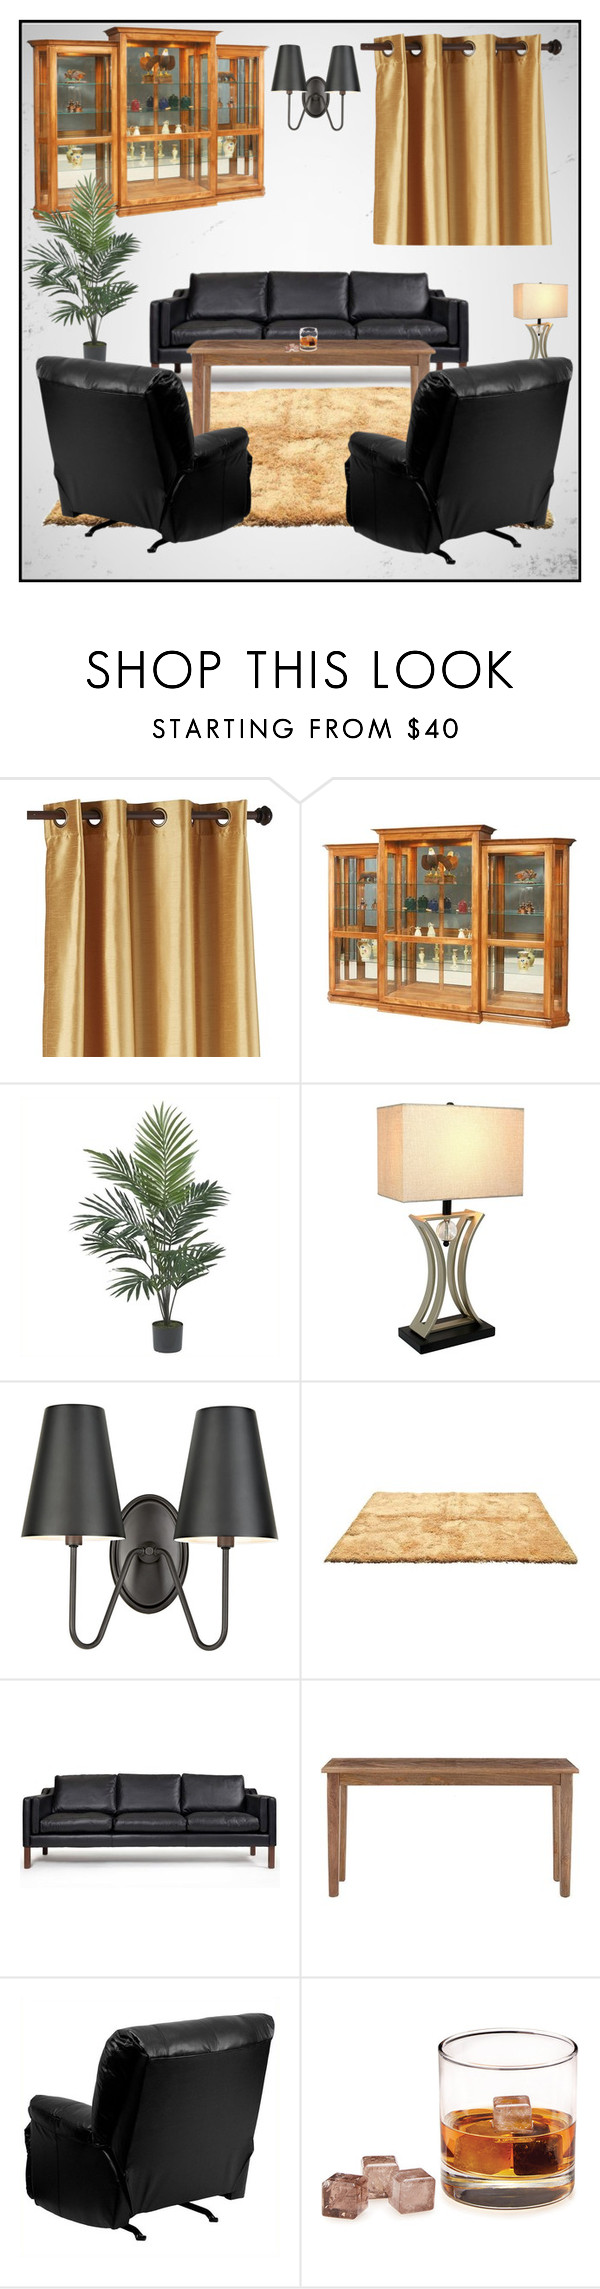 """""""'' Interior ''"""" by pepo-beckham ❤ liked on Polyvore featuring interior, interiors, interior design, home, home decor, interior decorating, Pier 1 Imports, DutchCrafters, Nearly Natural and Rove Concepts"""